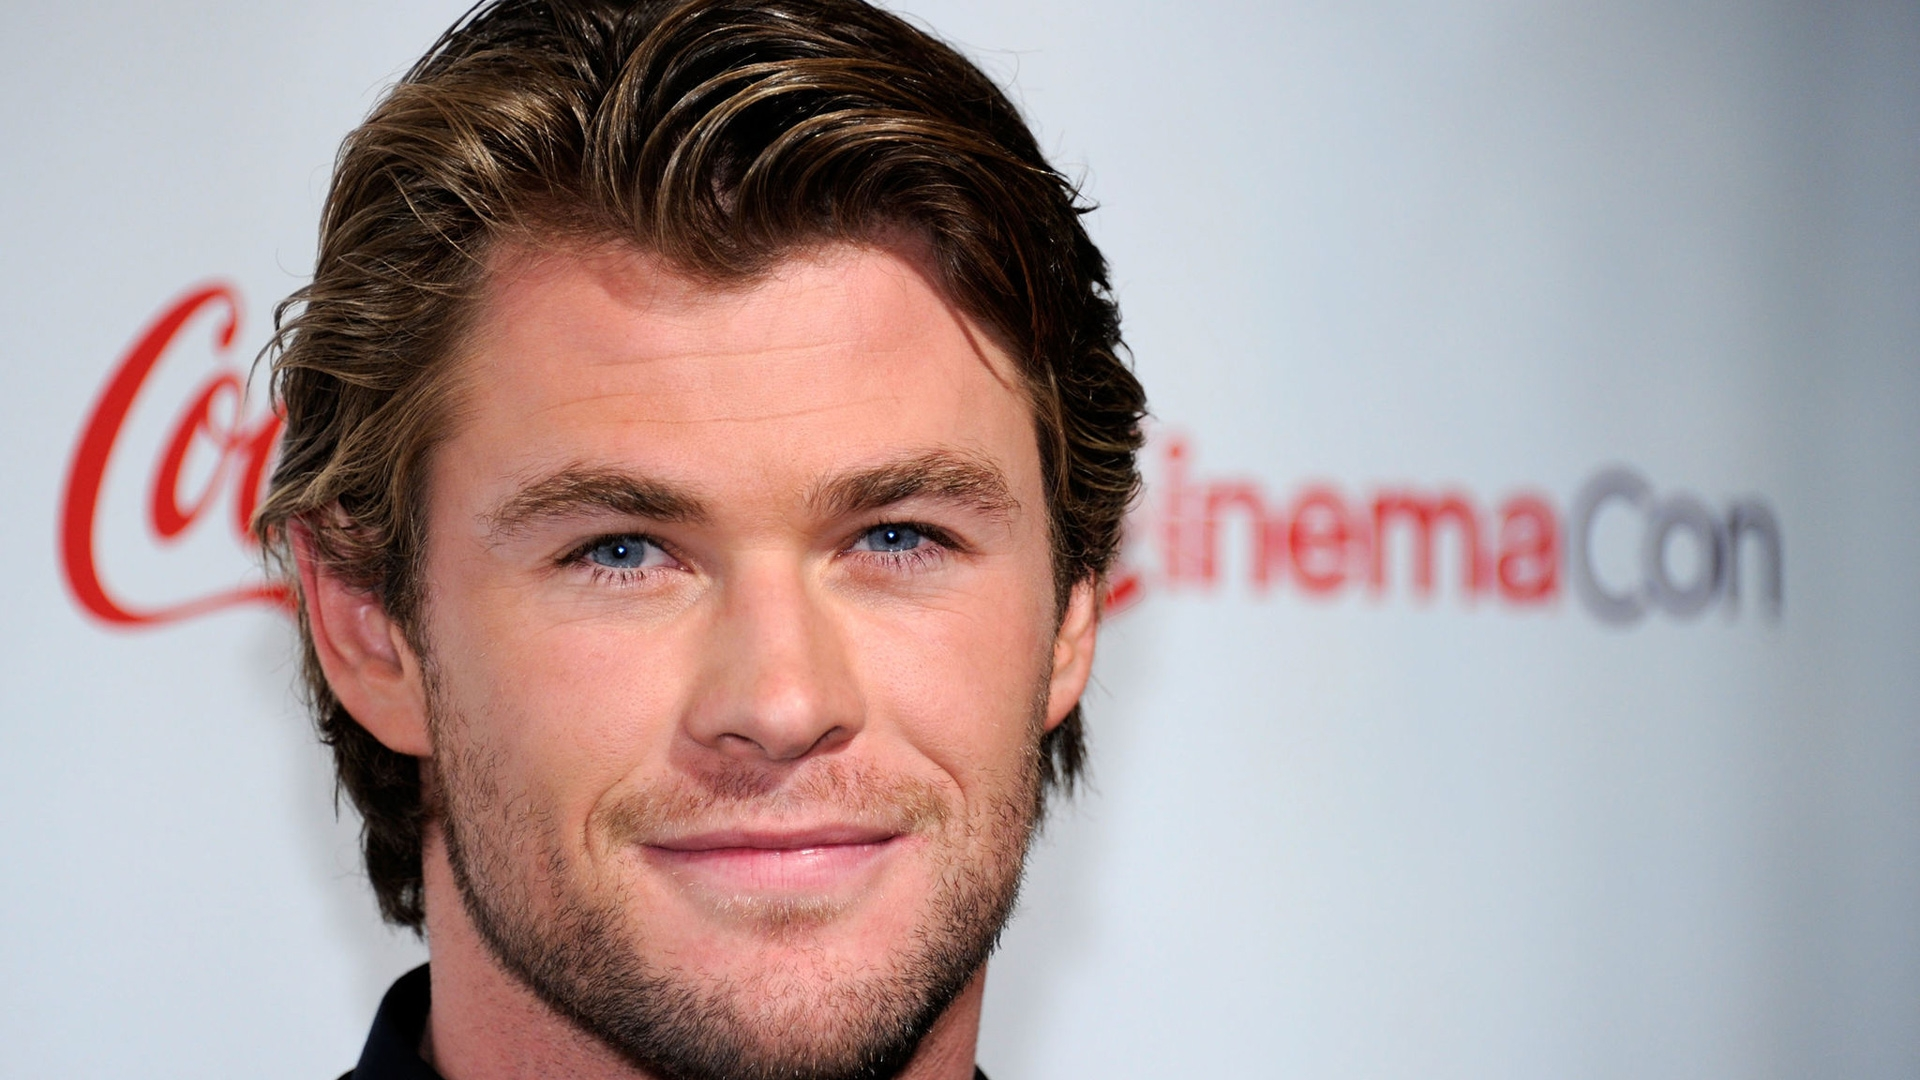 Chris Hemsworth   High Definition Wallpapers   HD wallpapers 1920x1080